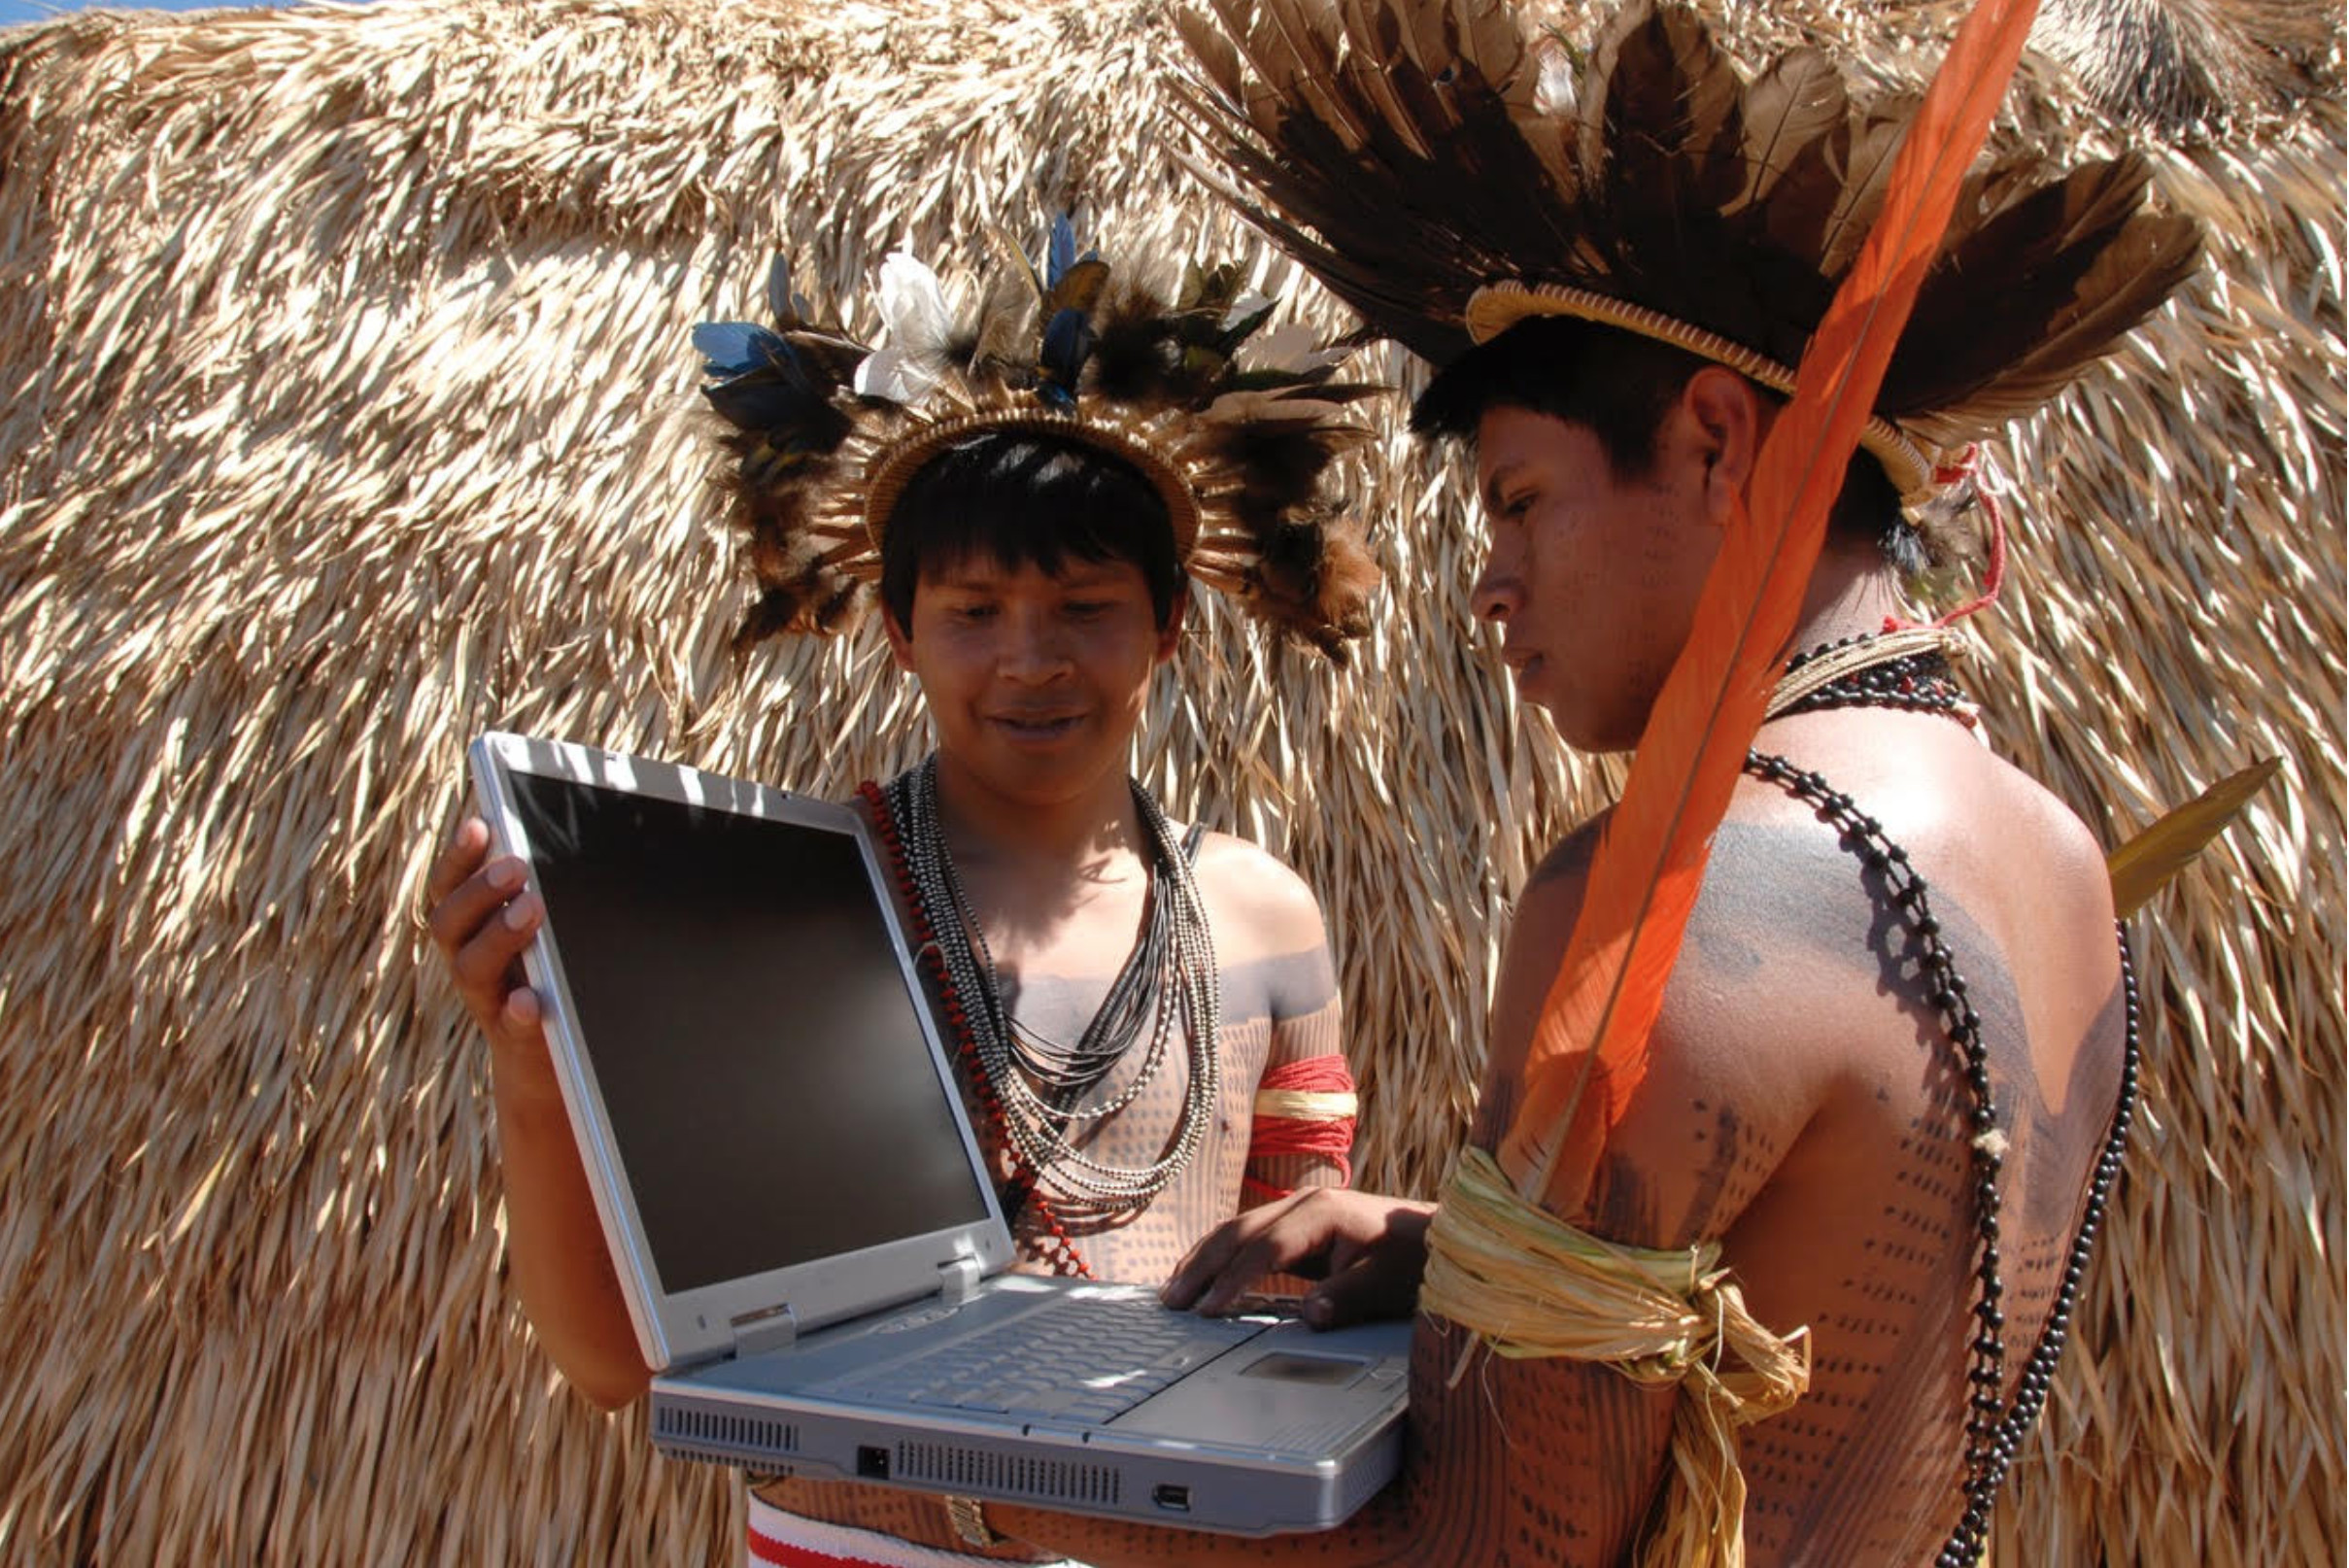 Picture shows members from the Surui Paiter Tribe in the Brazilian Amazon as they access the Internet in their remote community. Credit: Surui Metareila Association Archives. Courtesy of Vasco M. van Roosmalen from ECAM.